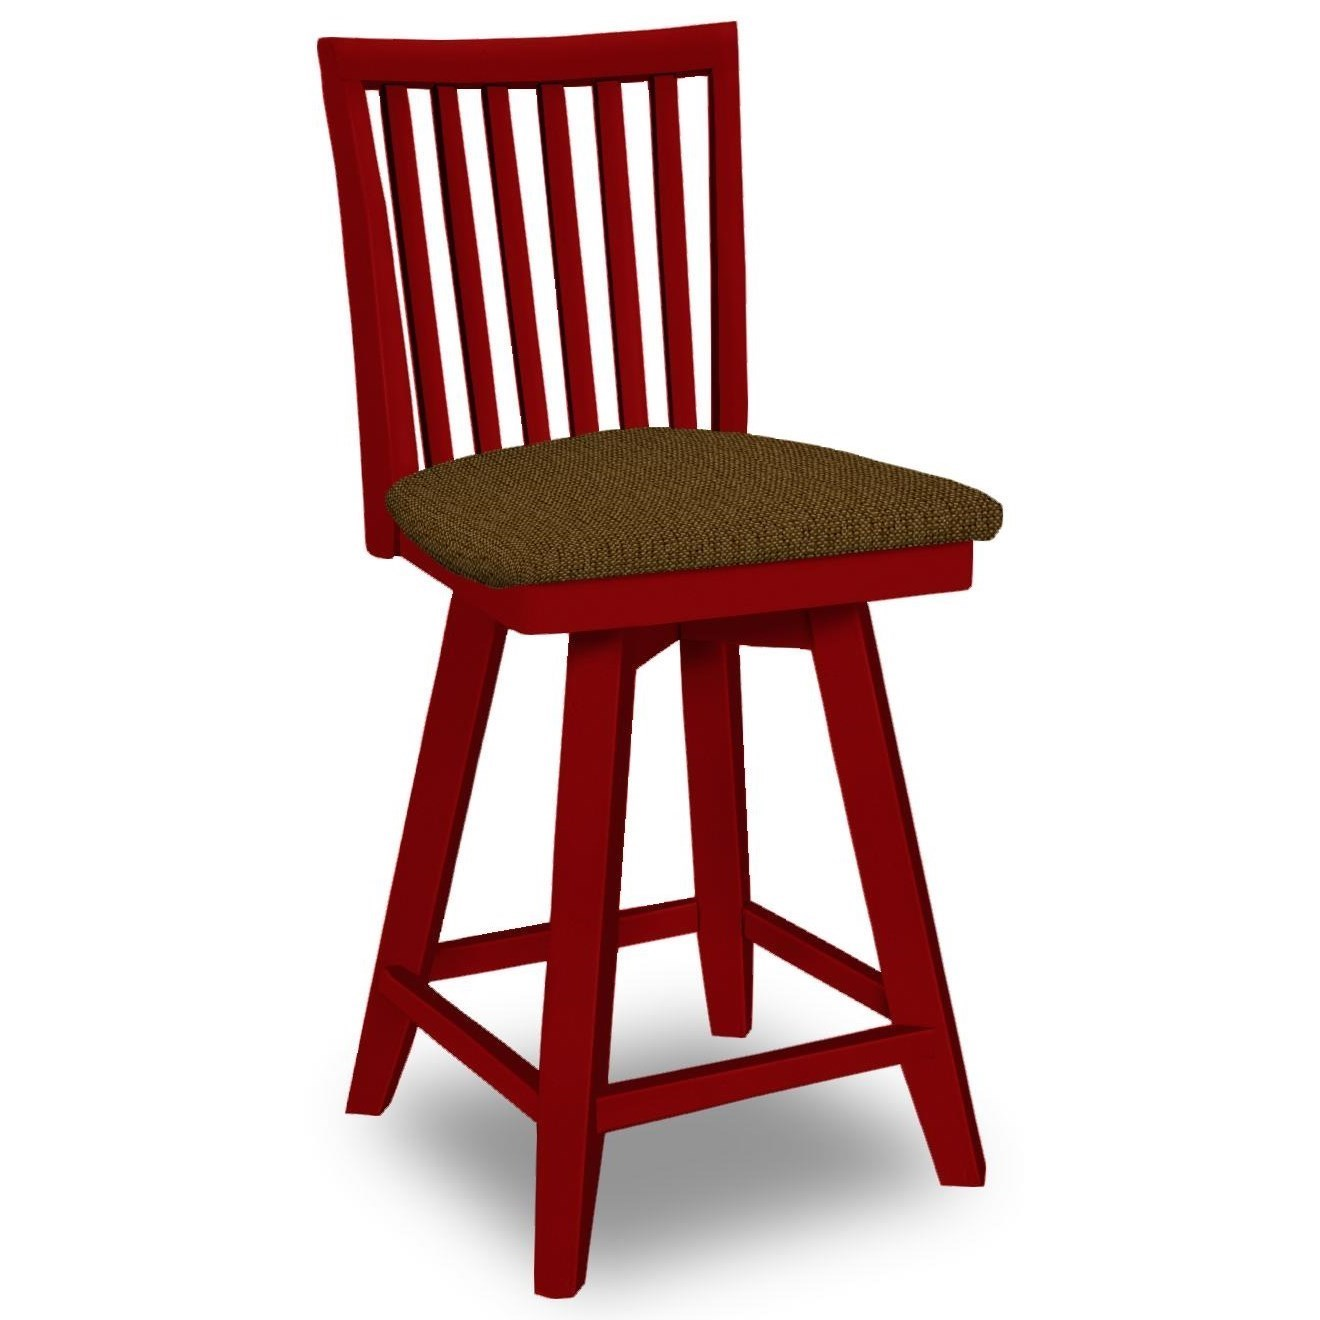 John Thomas SELECT Dining Swivel Counter Height Bar Stool  : products2Fjohnthomas2Fcolor2Fselects 262swb f31 hd267 b1jpgscalebothampwidth500ampheight500ampfsharpen25ampdown from www.wayside-furniture.com size 500 x 500 jpeg 31kB